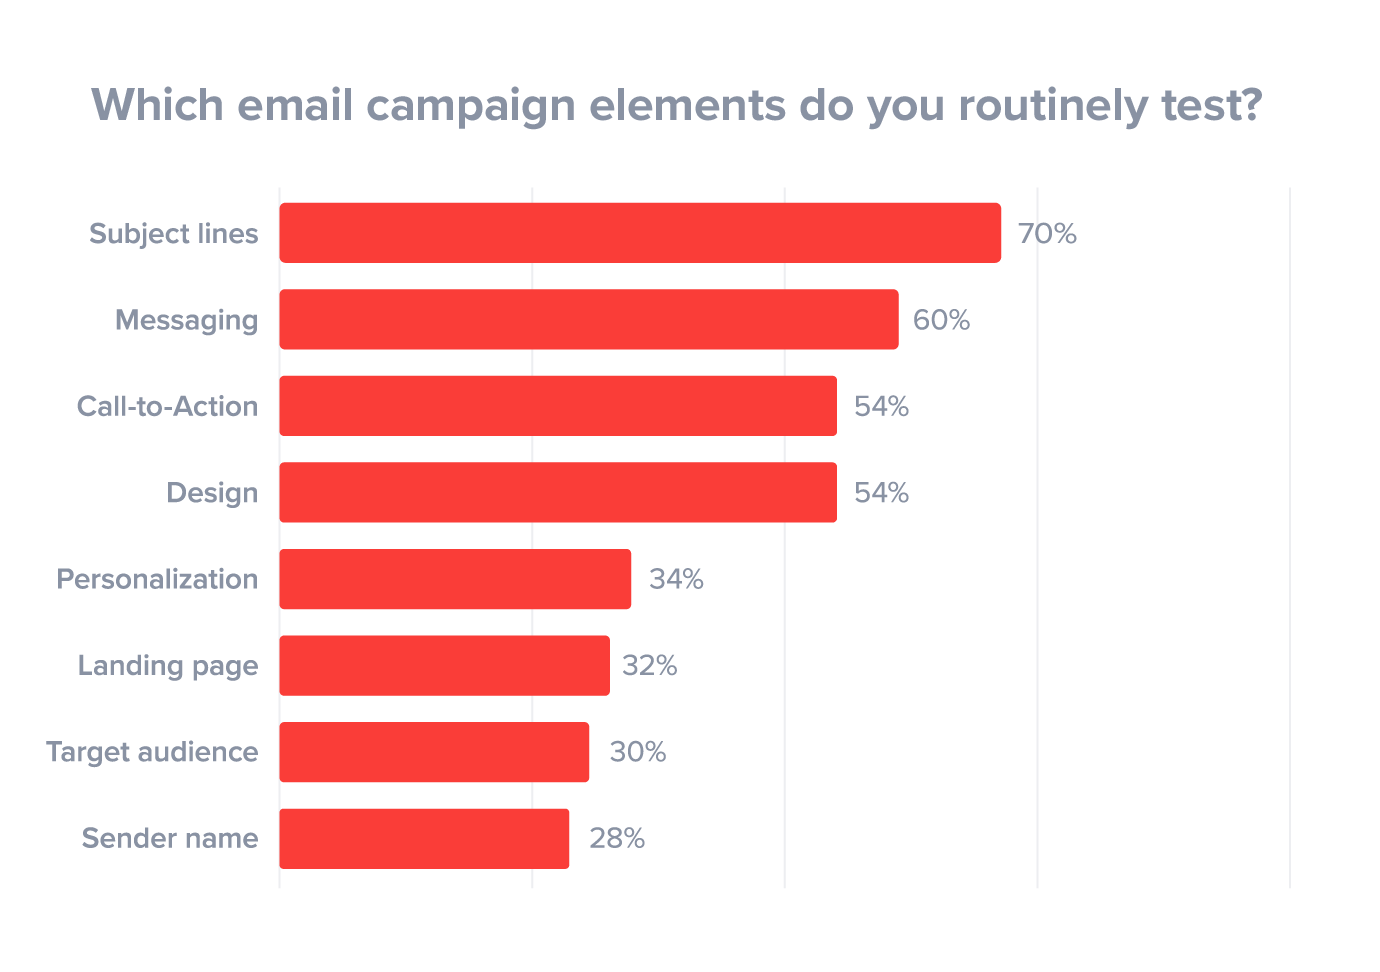 email campaign elements tested